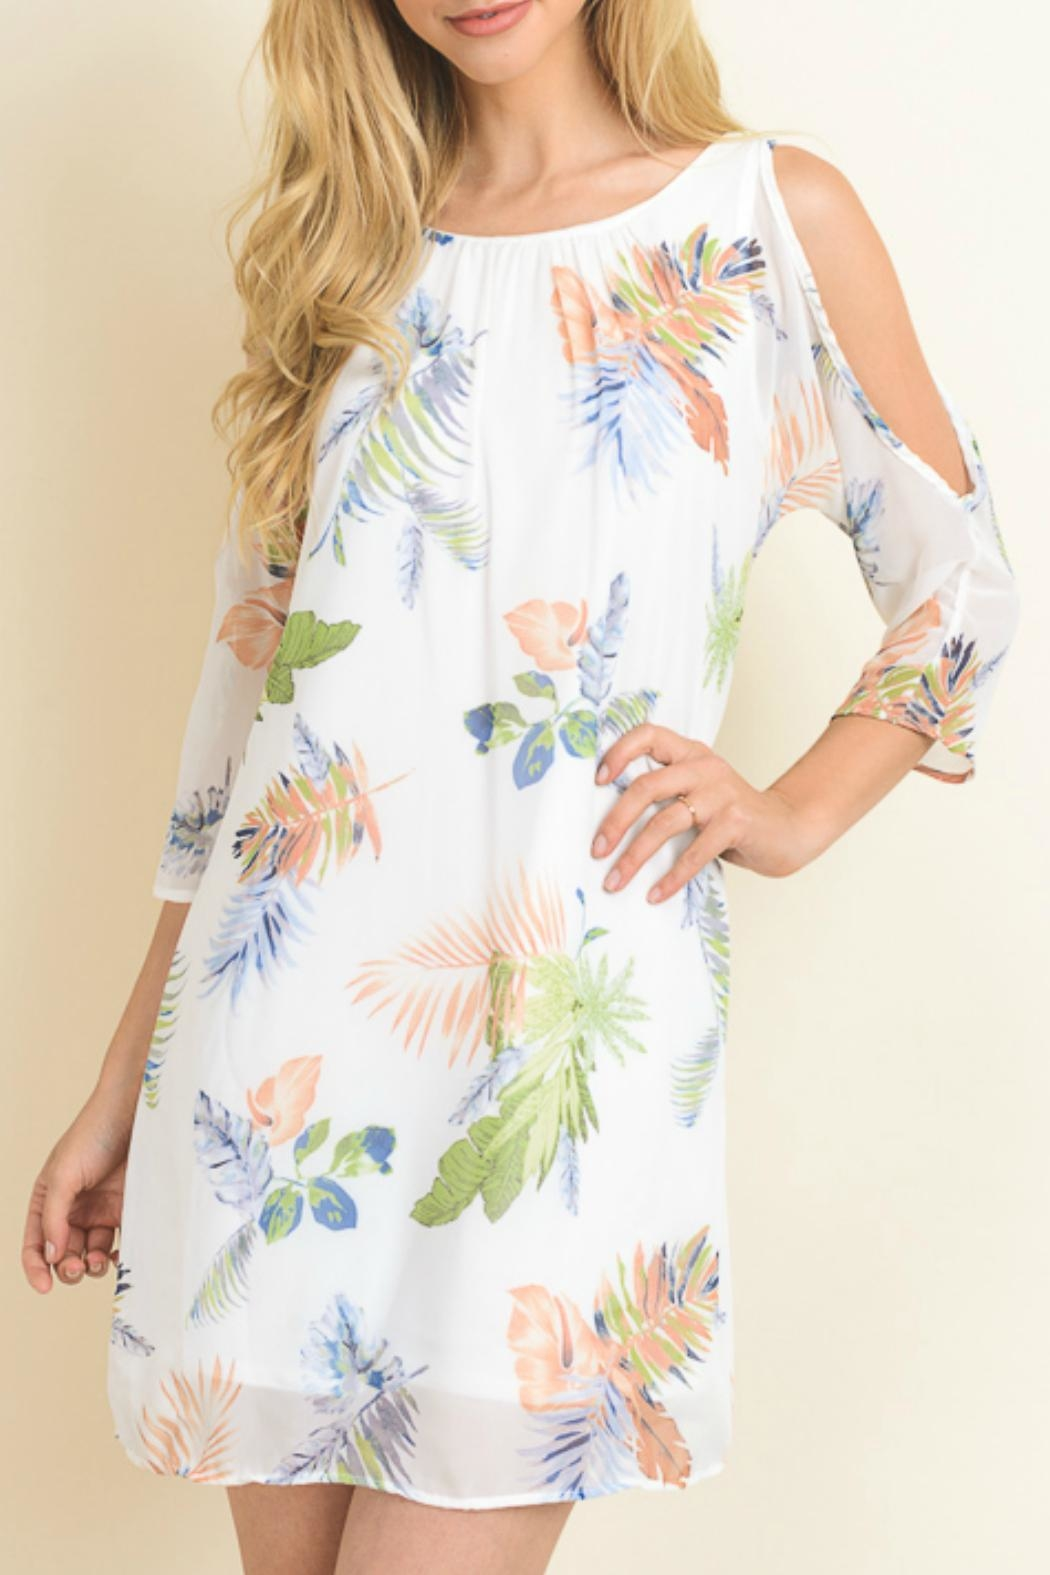 Le Lis Palm Print Dress - Main Image